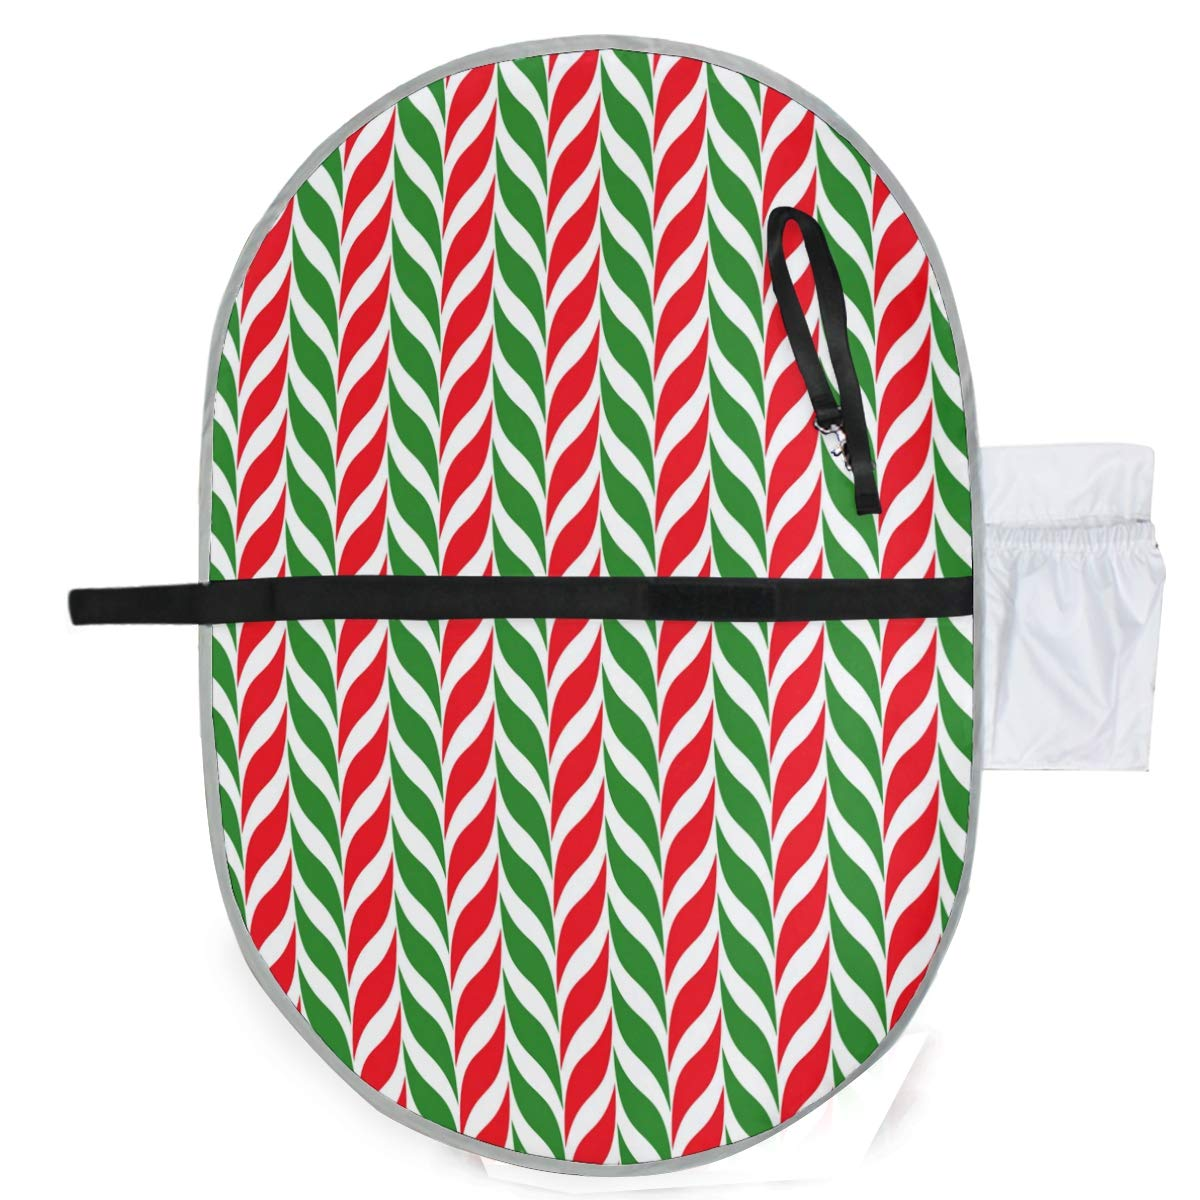 Waterproof Washable Baby Diaper Changing Pad Mat Red Green Candy Cane Portable and Foldable Infant Large Nappy Mat 27x20 inch